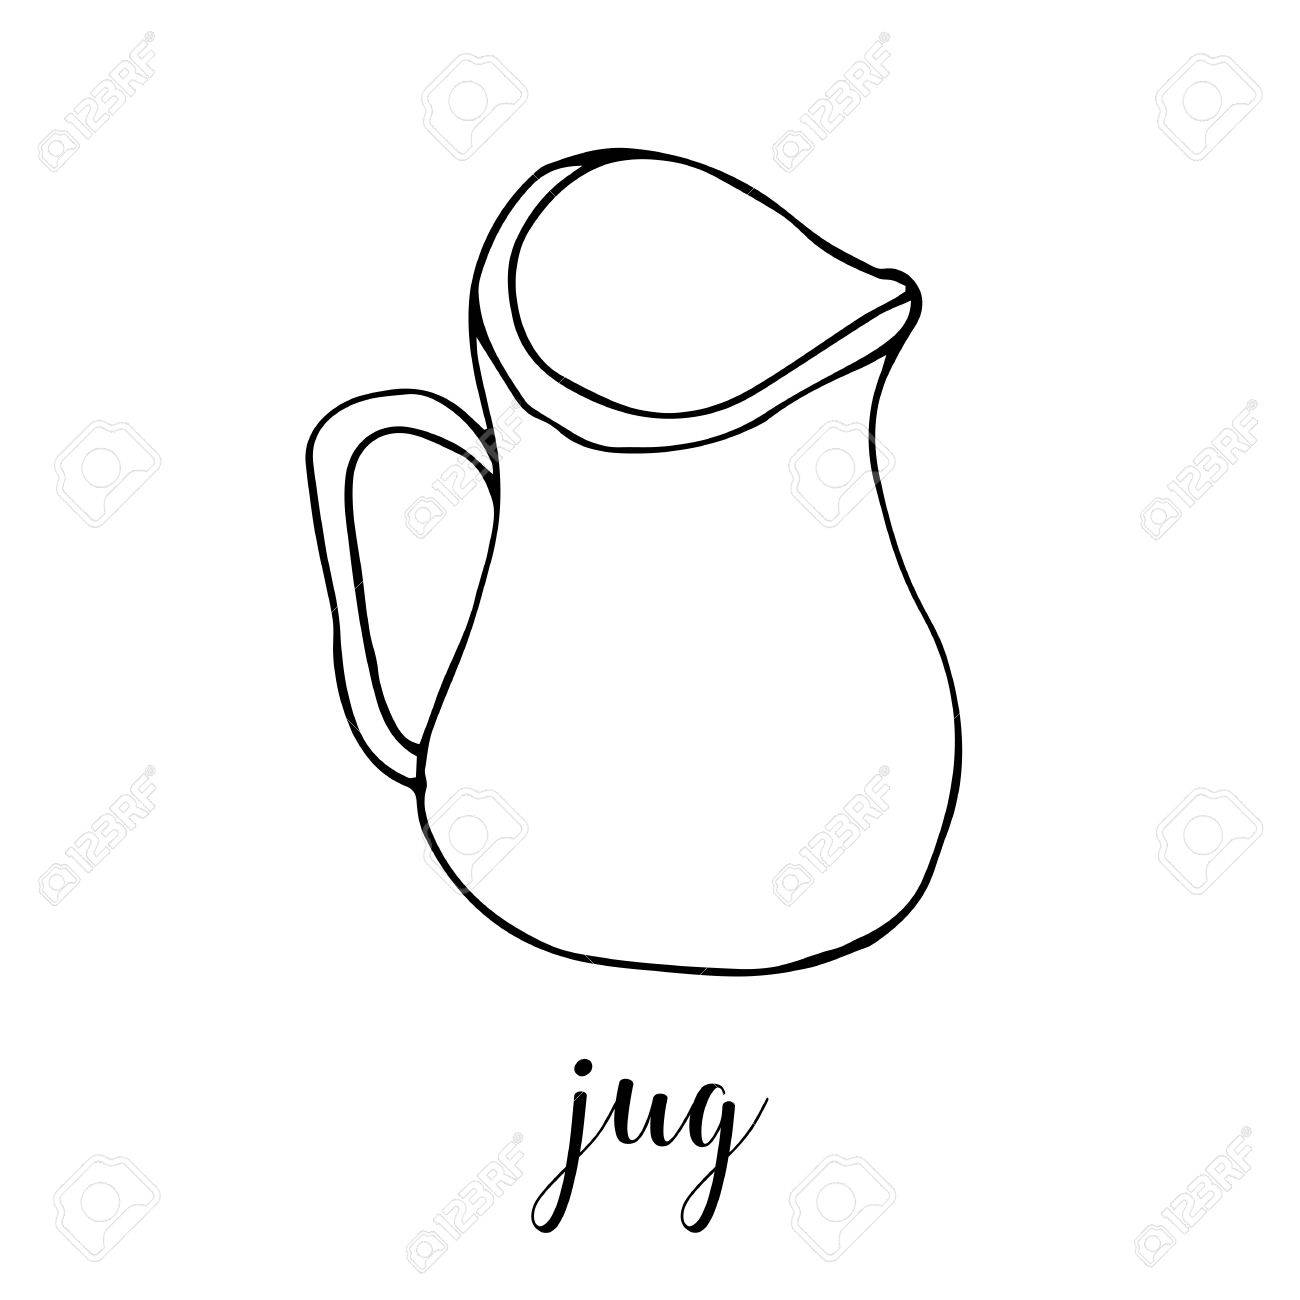 1300x1300 Childrens Drawing A Jug. The Template For The Painting. Hand